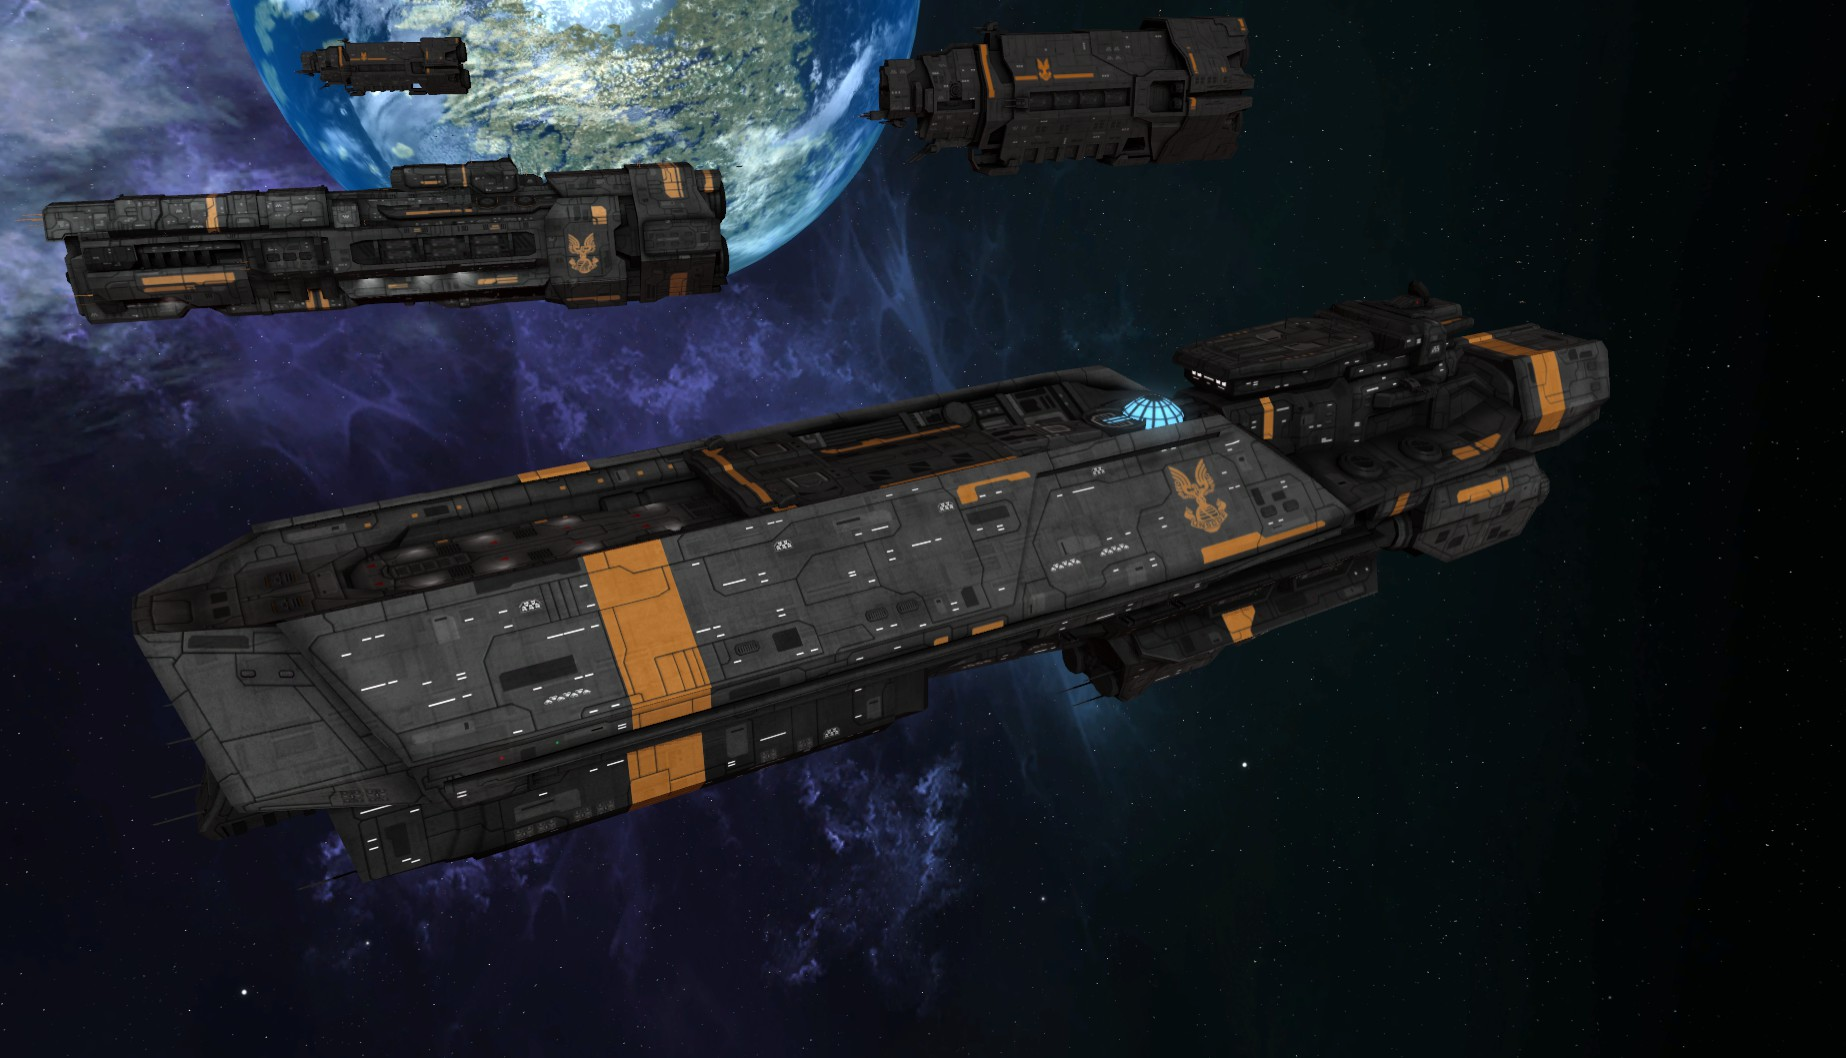 Orion-class assault carrier